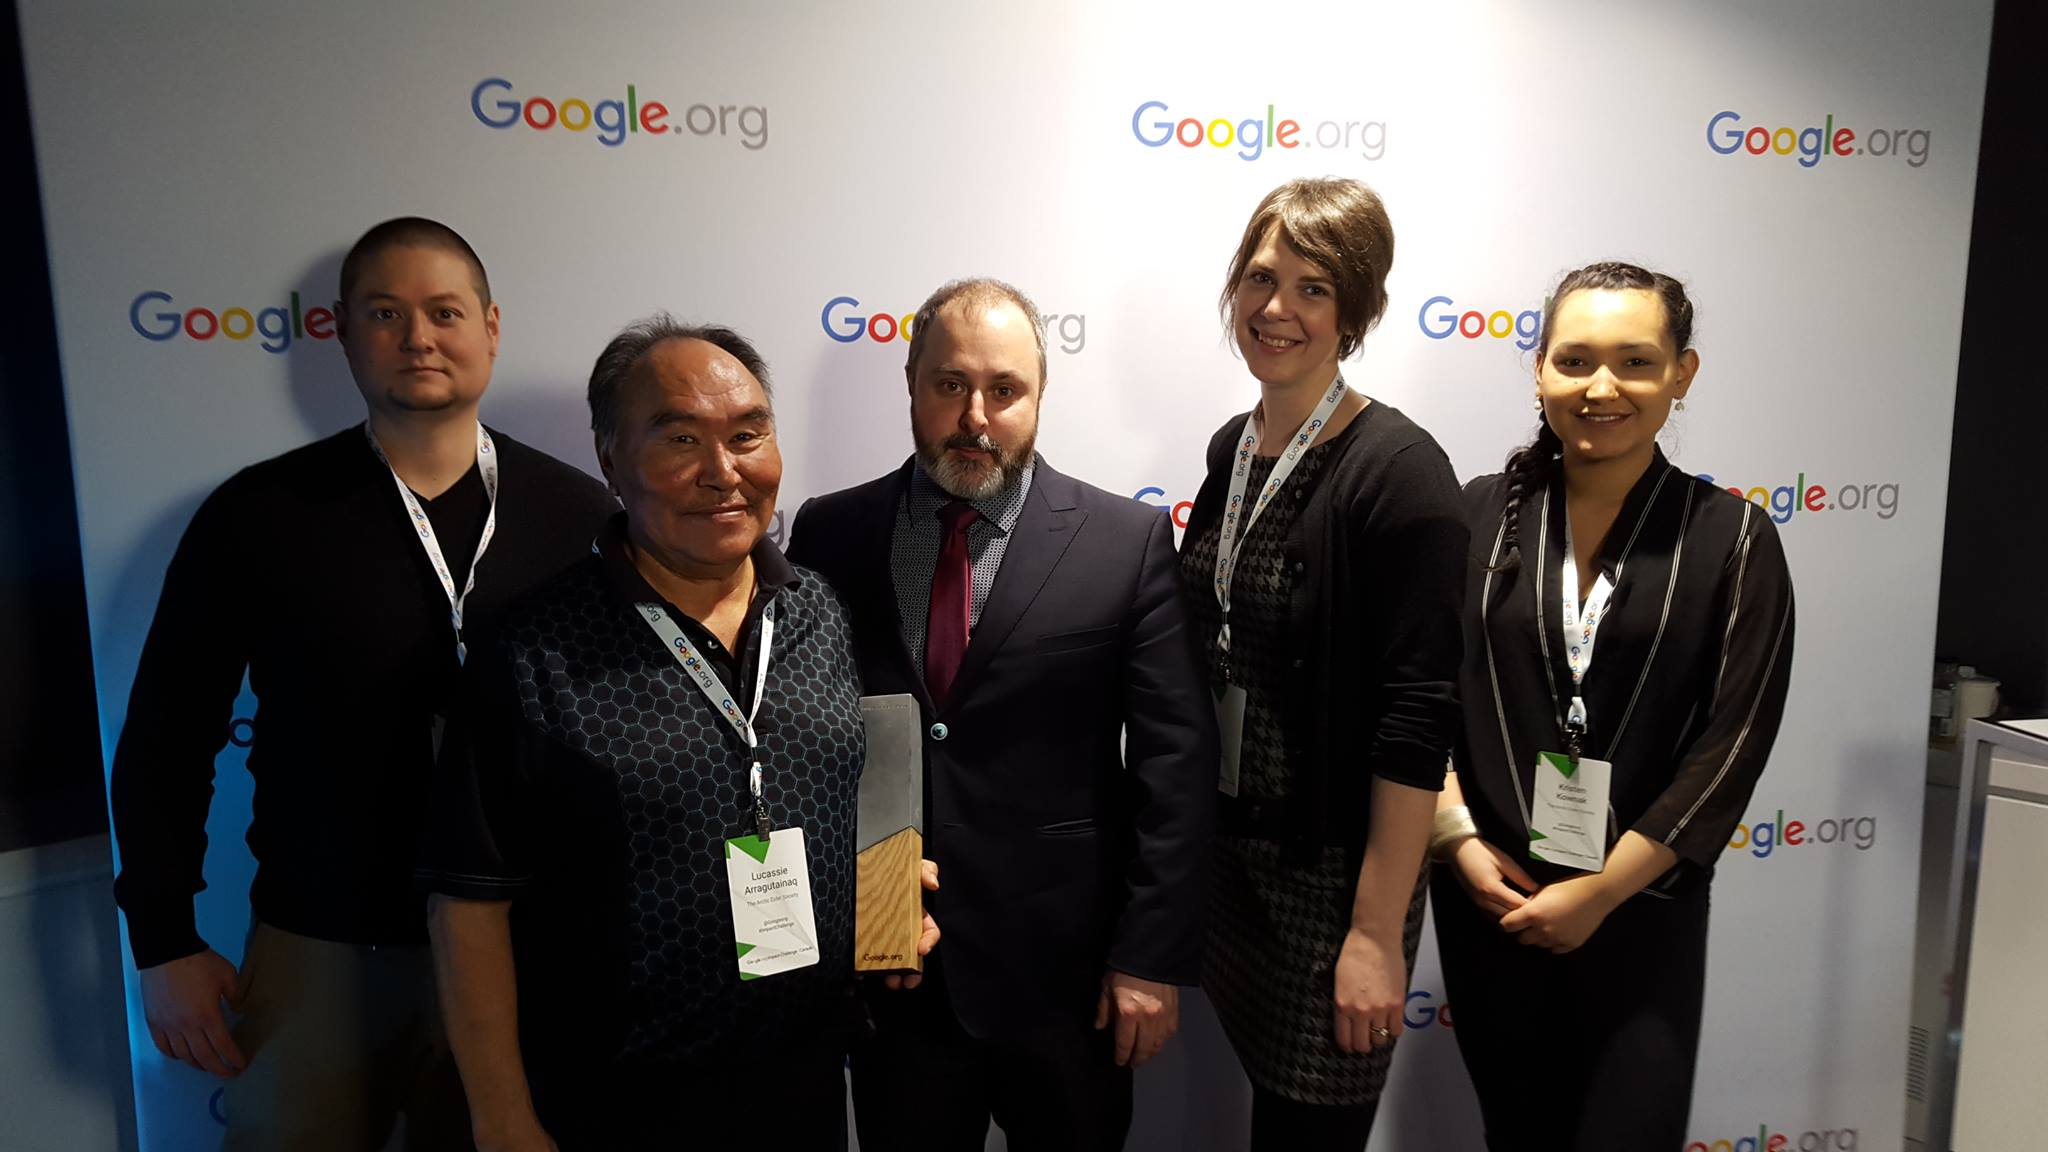 canadian-ngo-wins-google-750k-grant-to-map-changing-sea-ice-using-traditional-inuit-knowledge-1